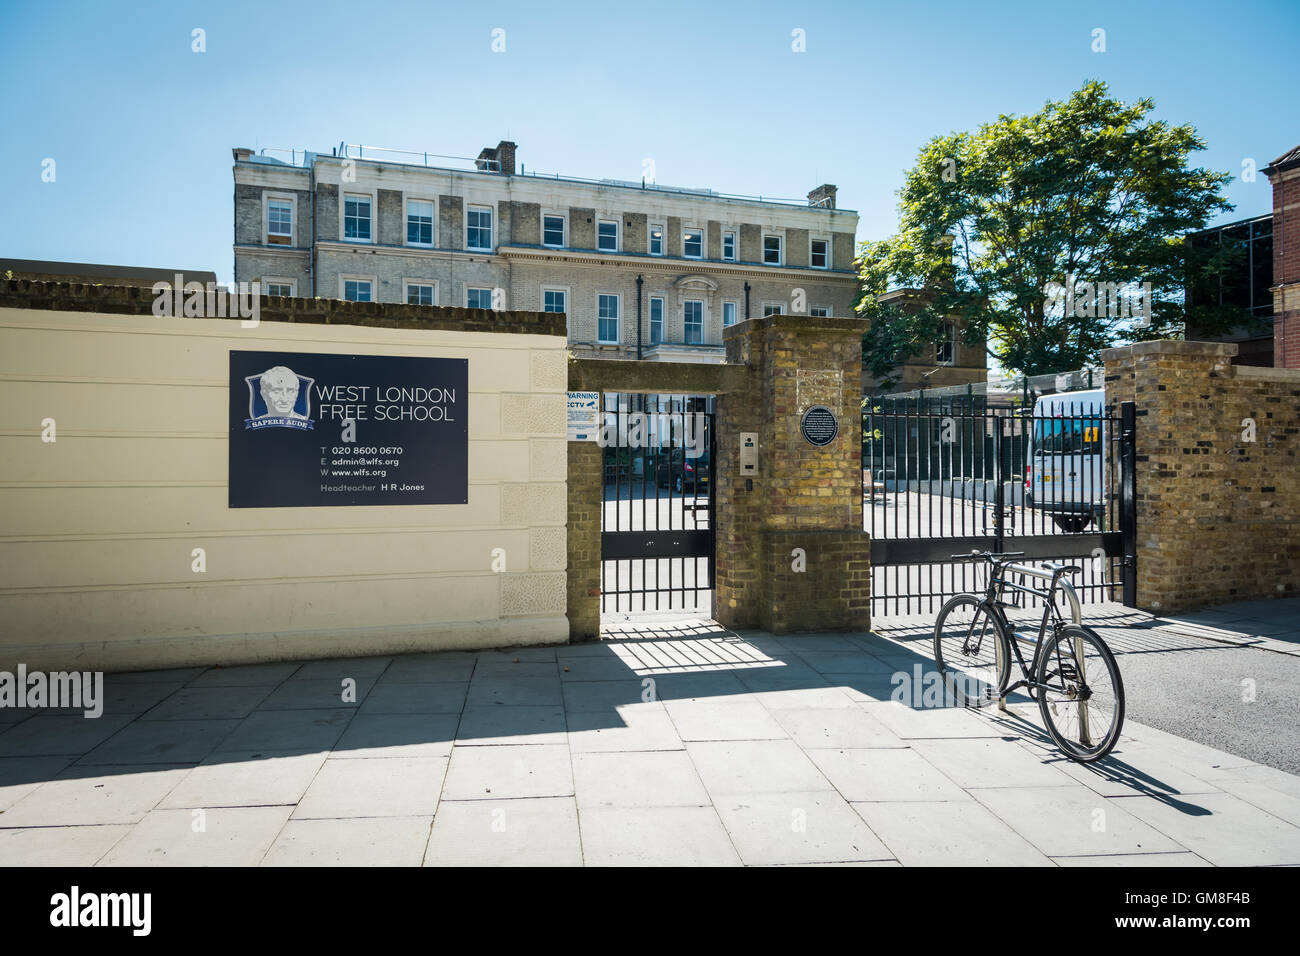 Entrance to the West London Free School in Palingswick House, Hammersmith, London, UK Stock Photo